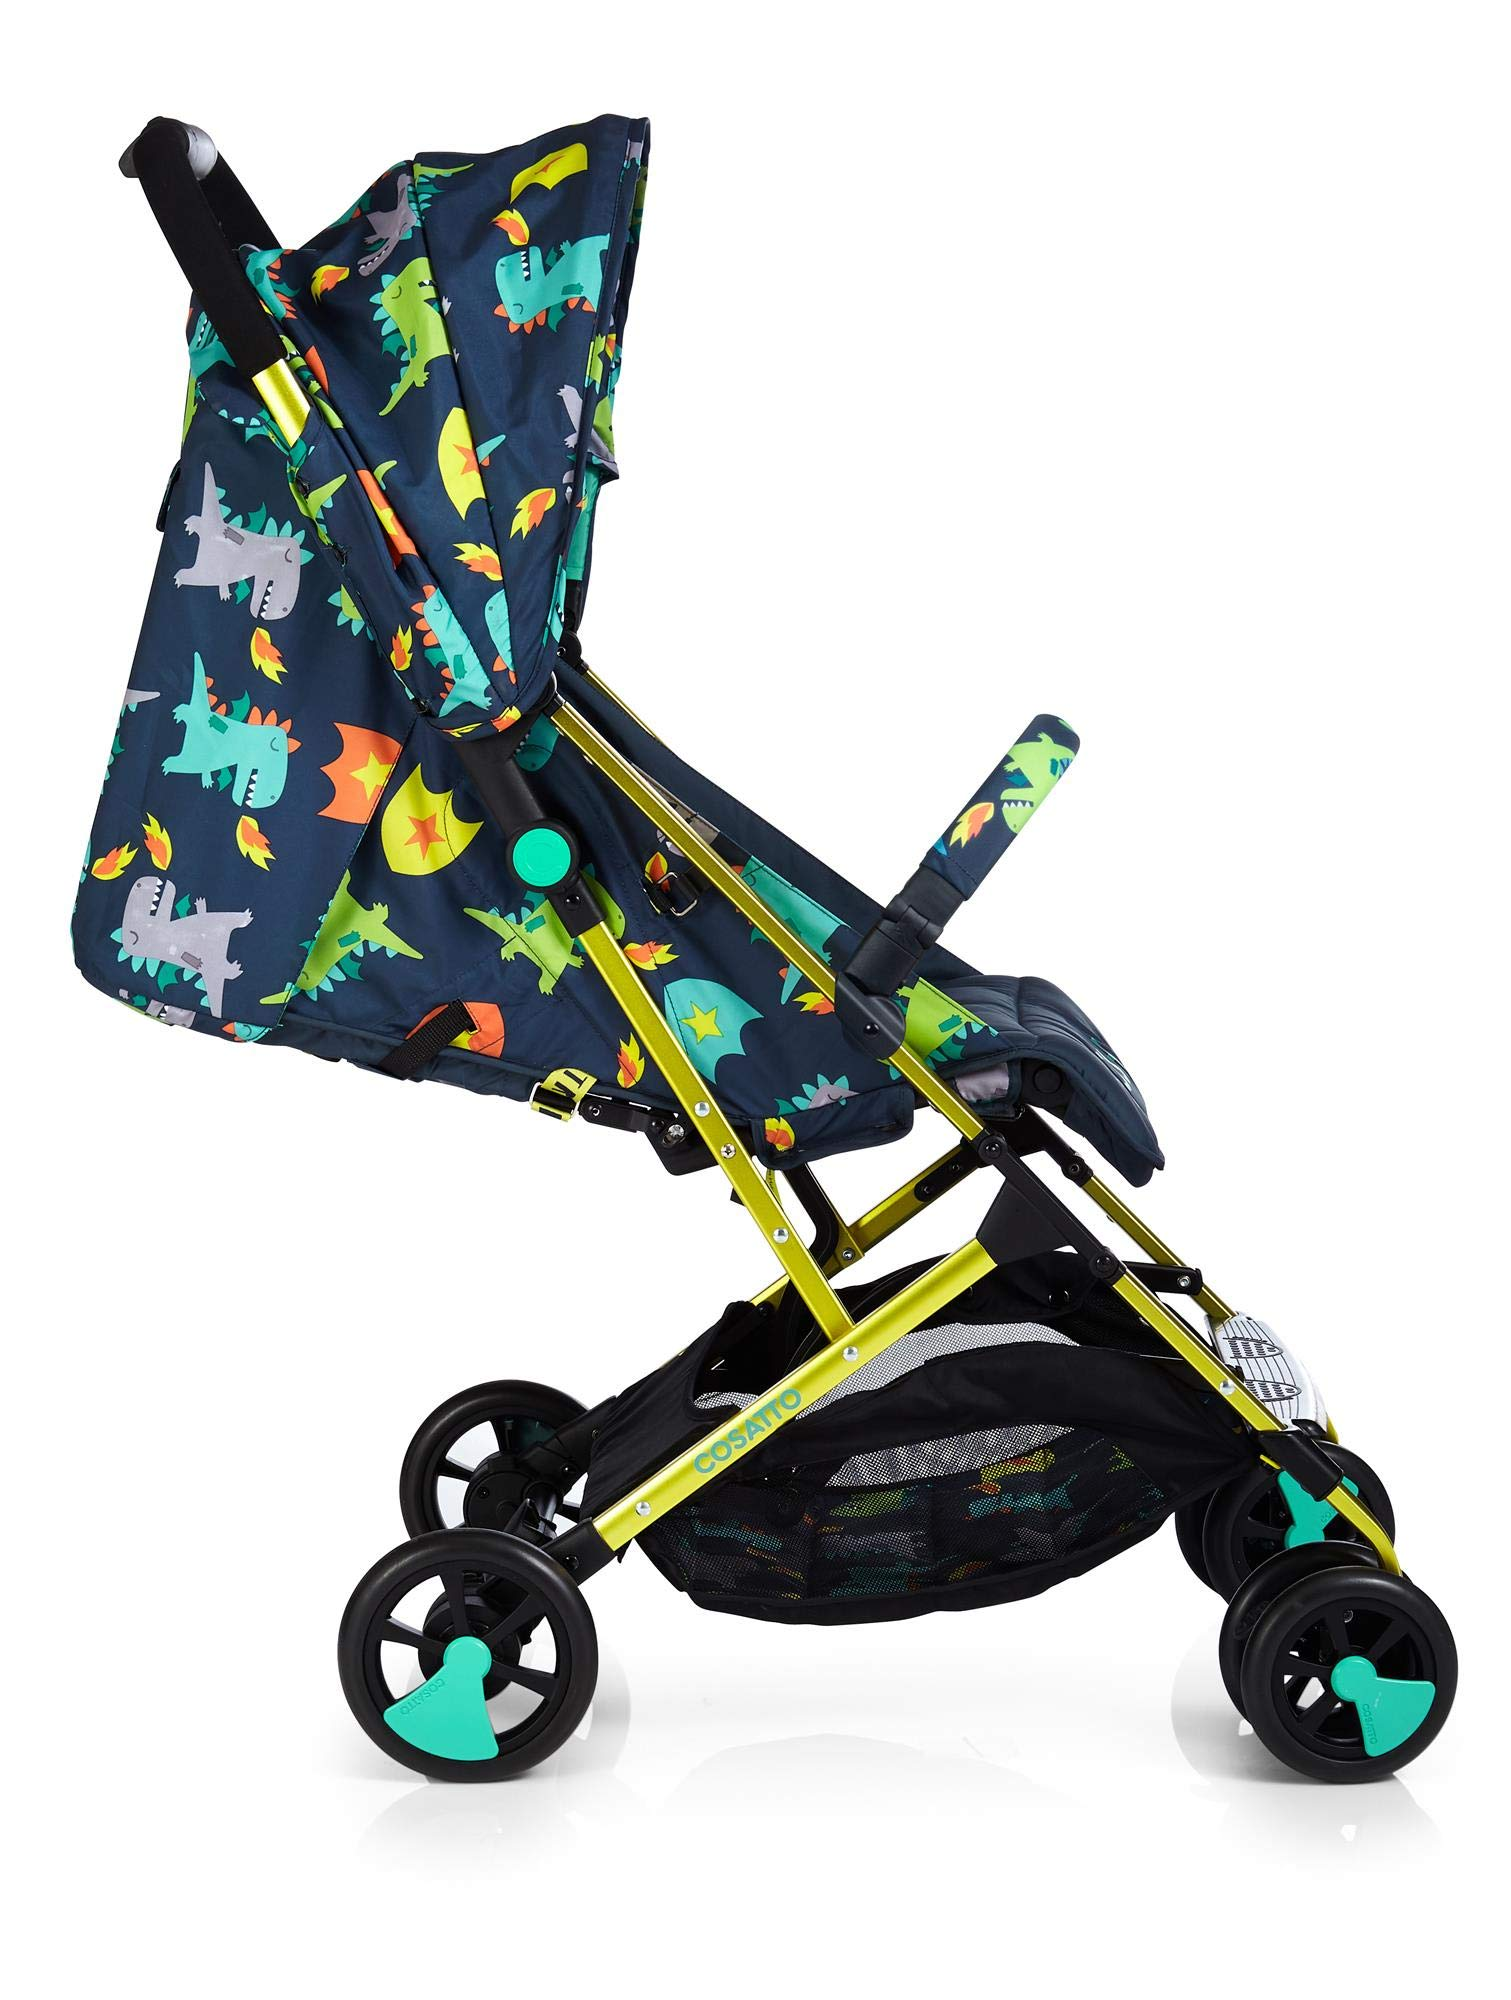 Cosatto CT4253 Woosh 2 Dragon Kingdom 7.2 kg Cosatto Suitable from birth to max weight of 25kg, lets your toddler use it for even longer Lightweight, sturdy aluminium frame New-born recline 2